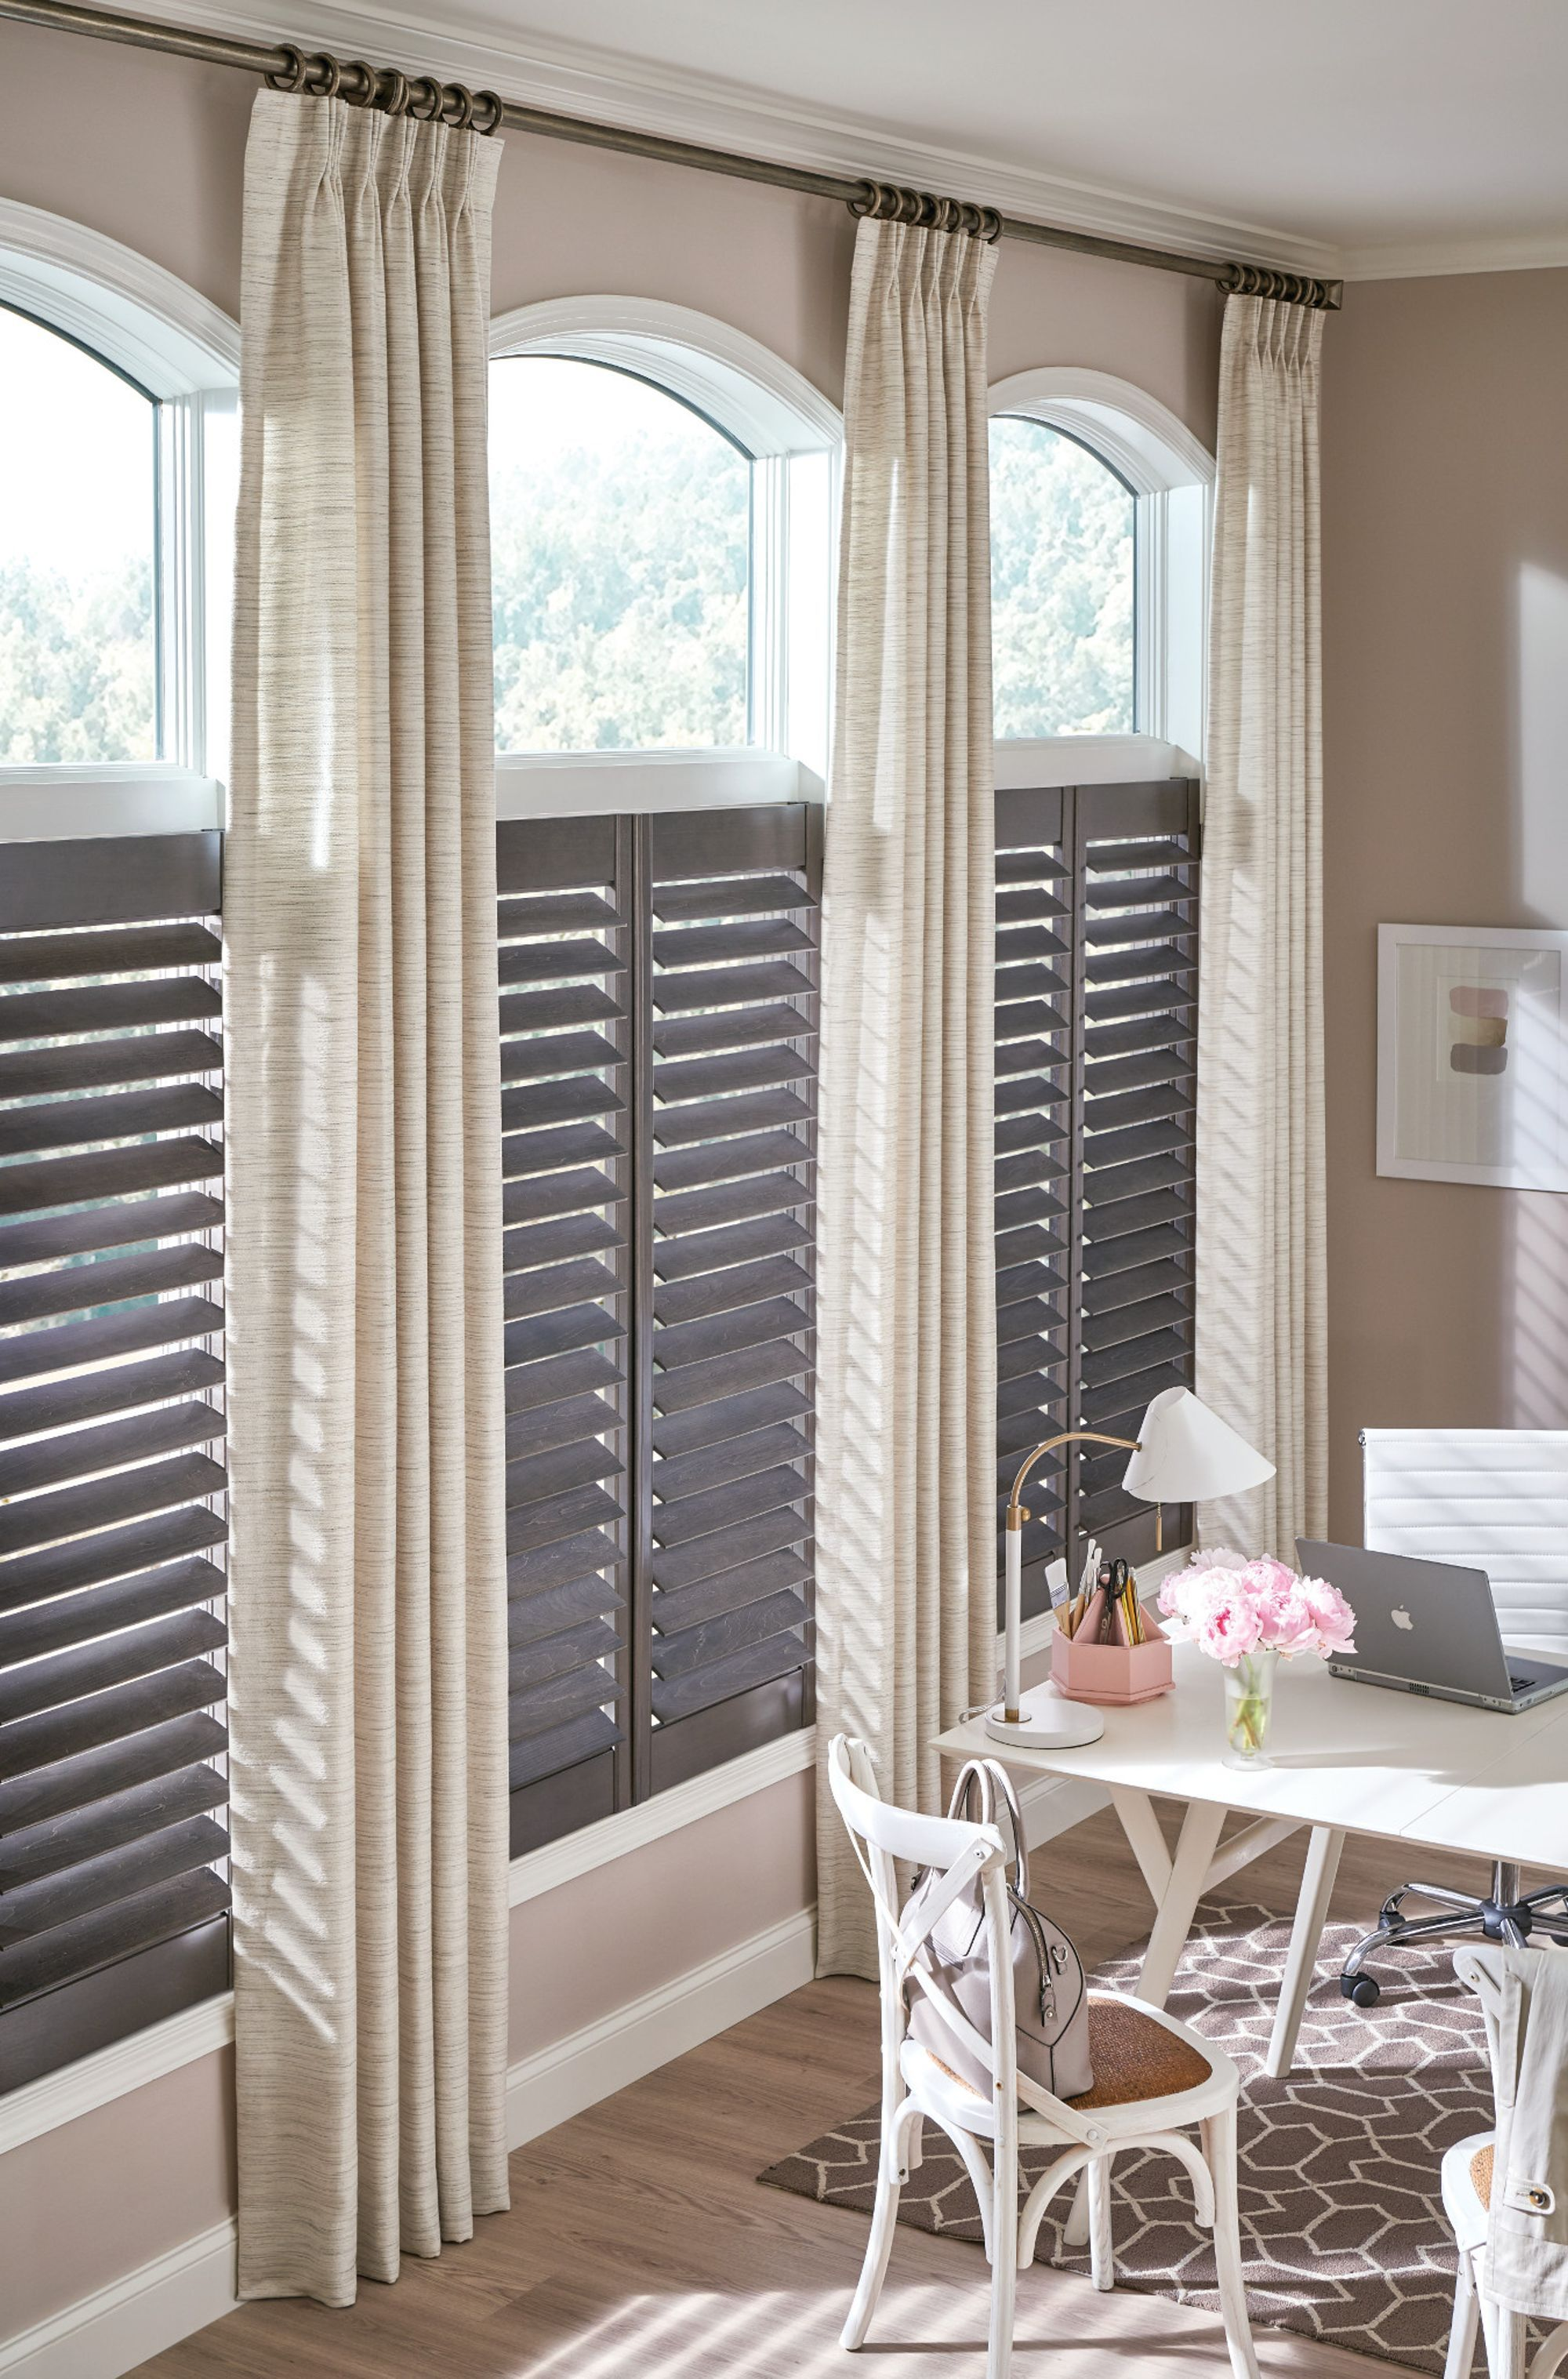 Traditions wood shutters with